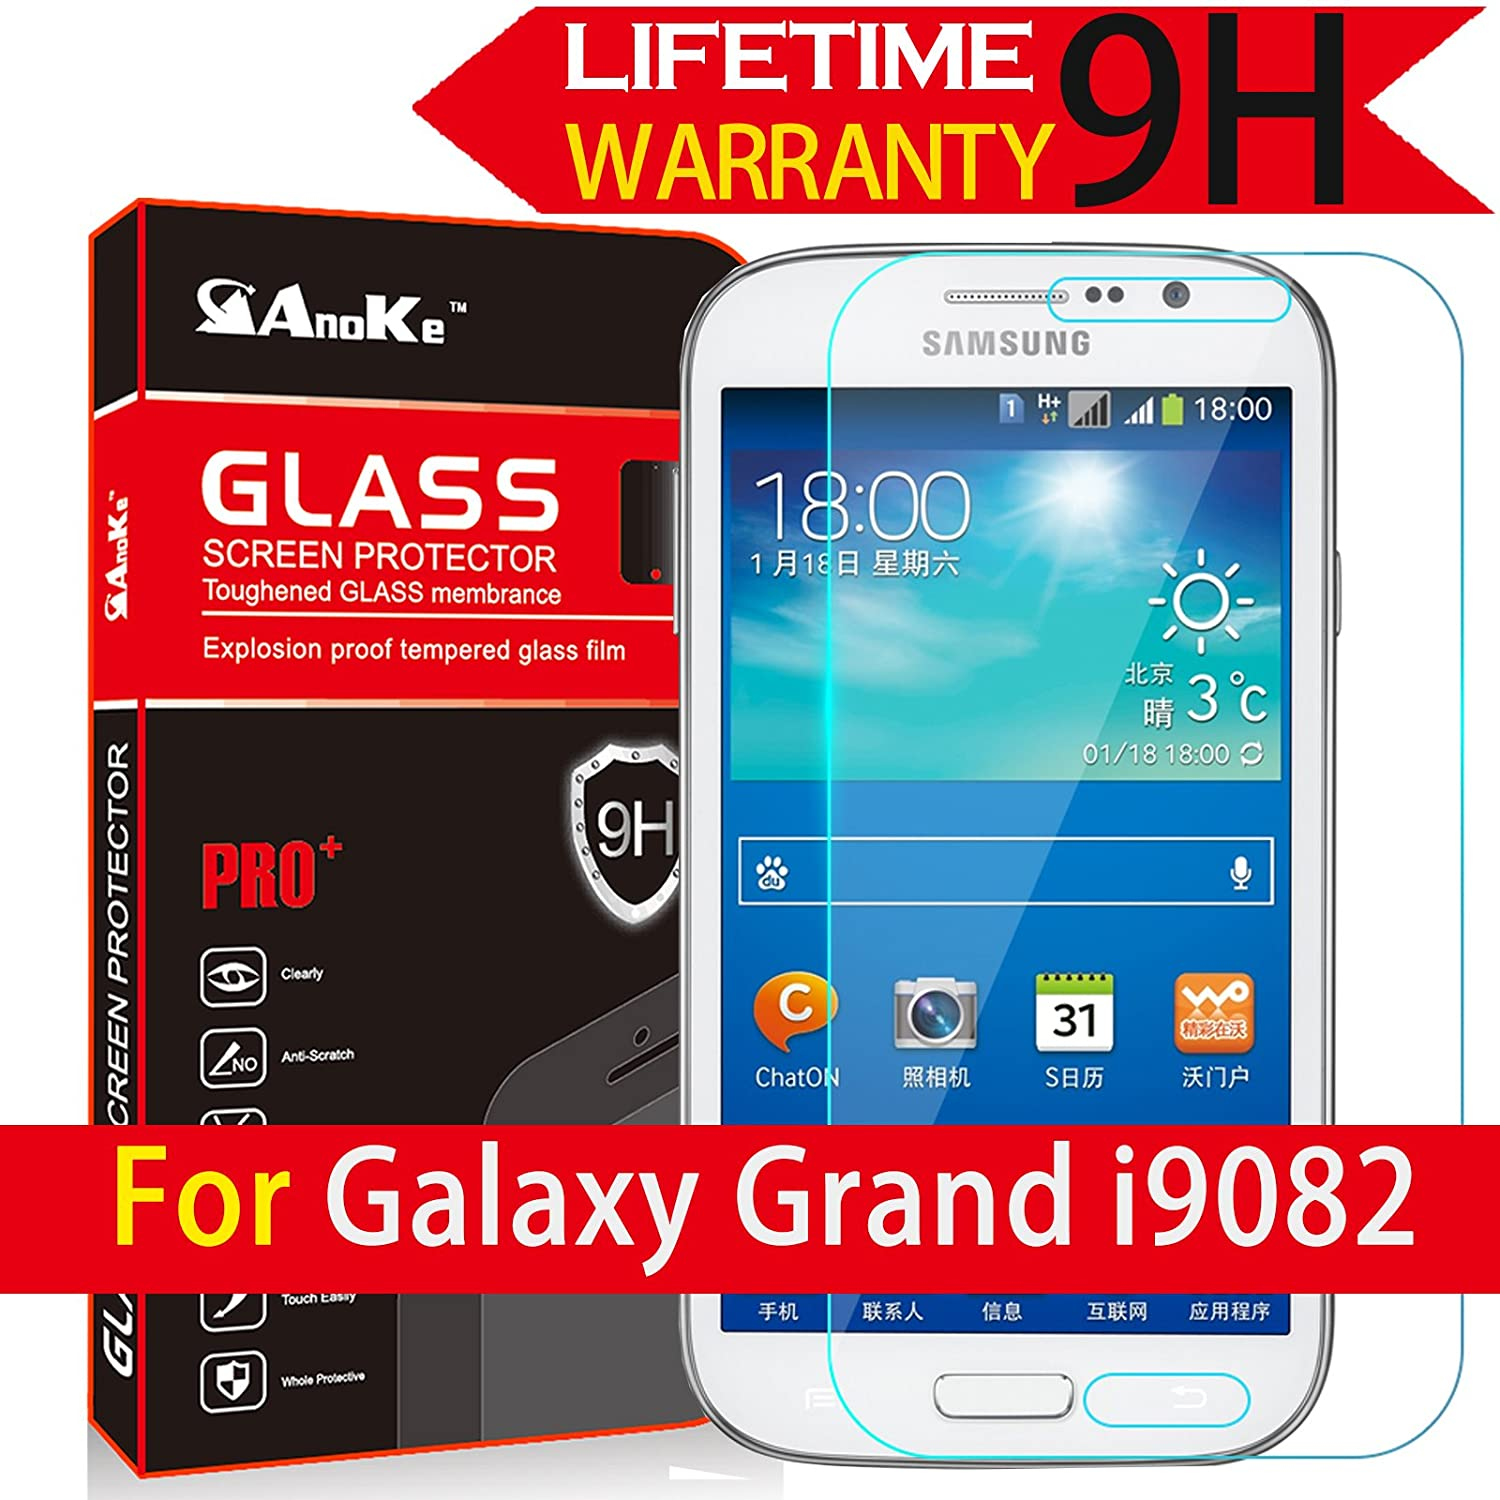 Anoke Samsung I9060 I9082 Tempered Glass Front Lcd Screen Protectors Galaxy Grand Neo 9h Hardness 25d Rounded Edges 03mm Thickness For